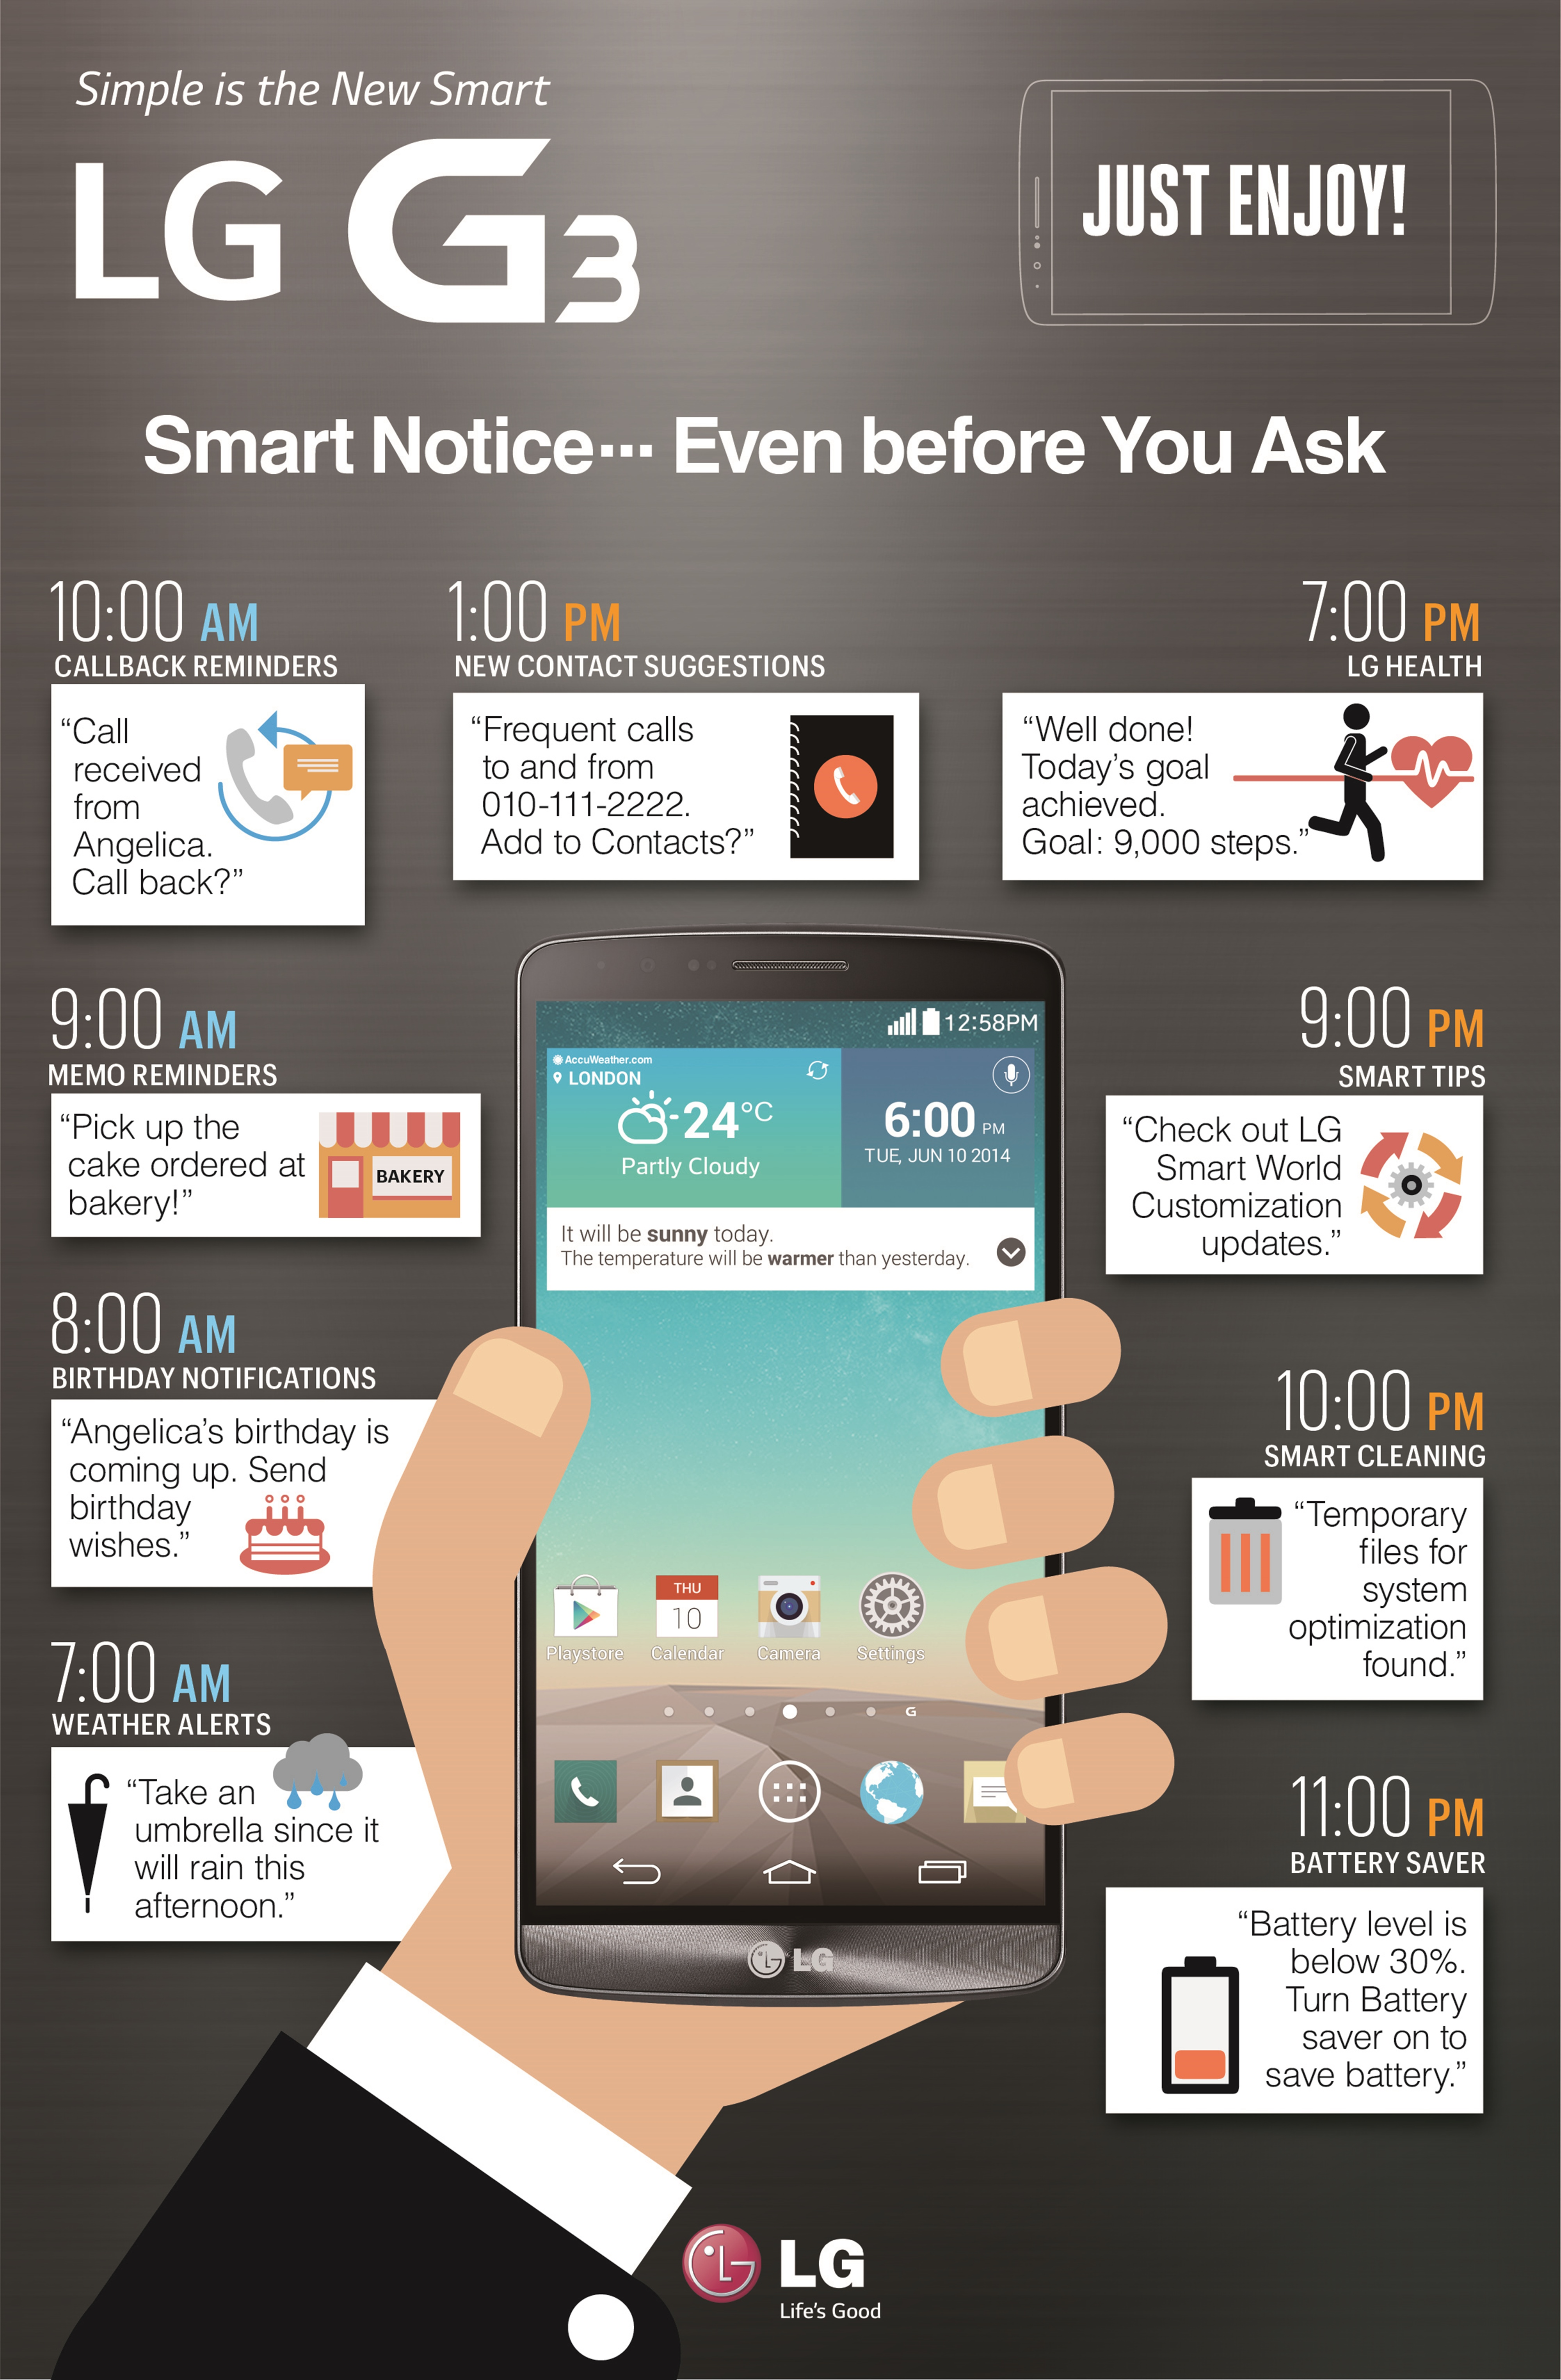 An infographic explains the features of LG G3.